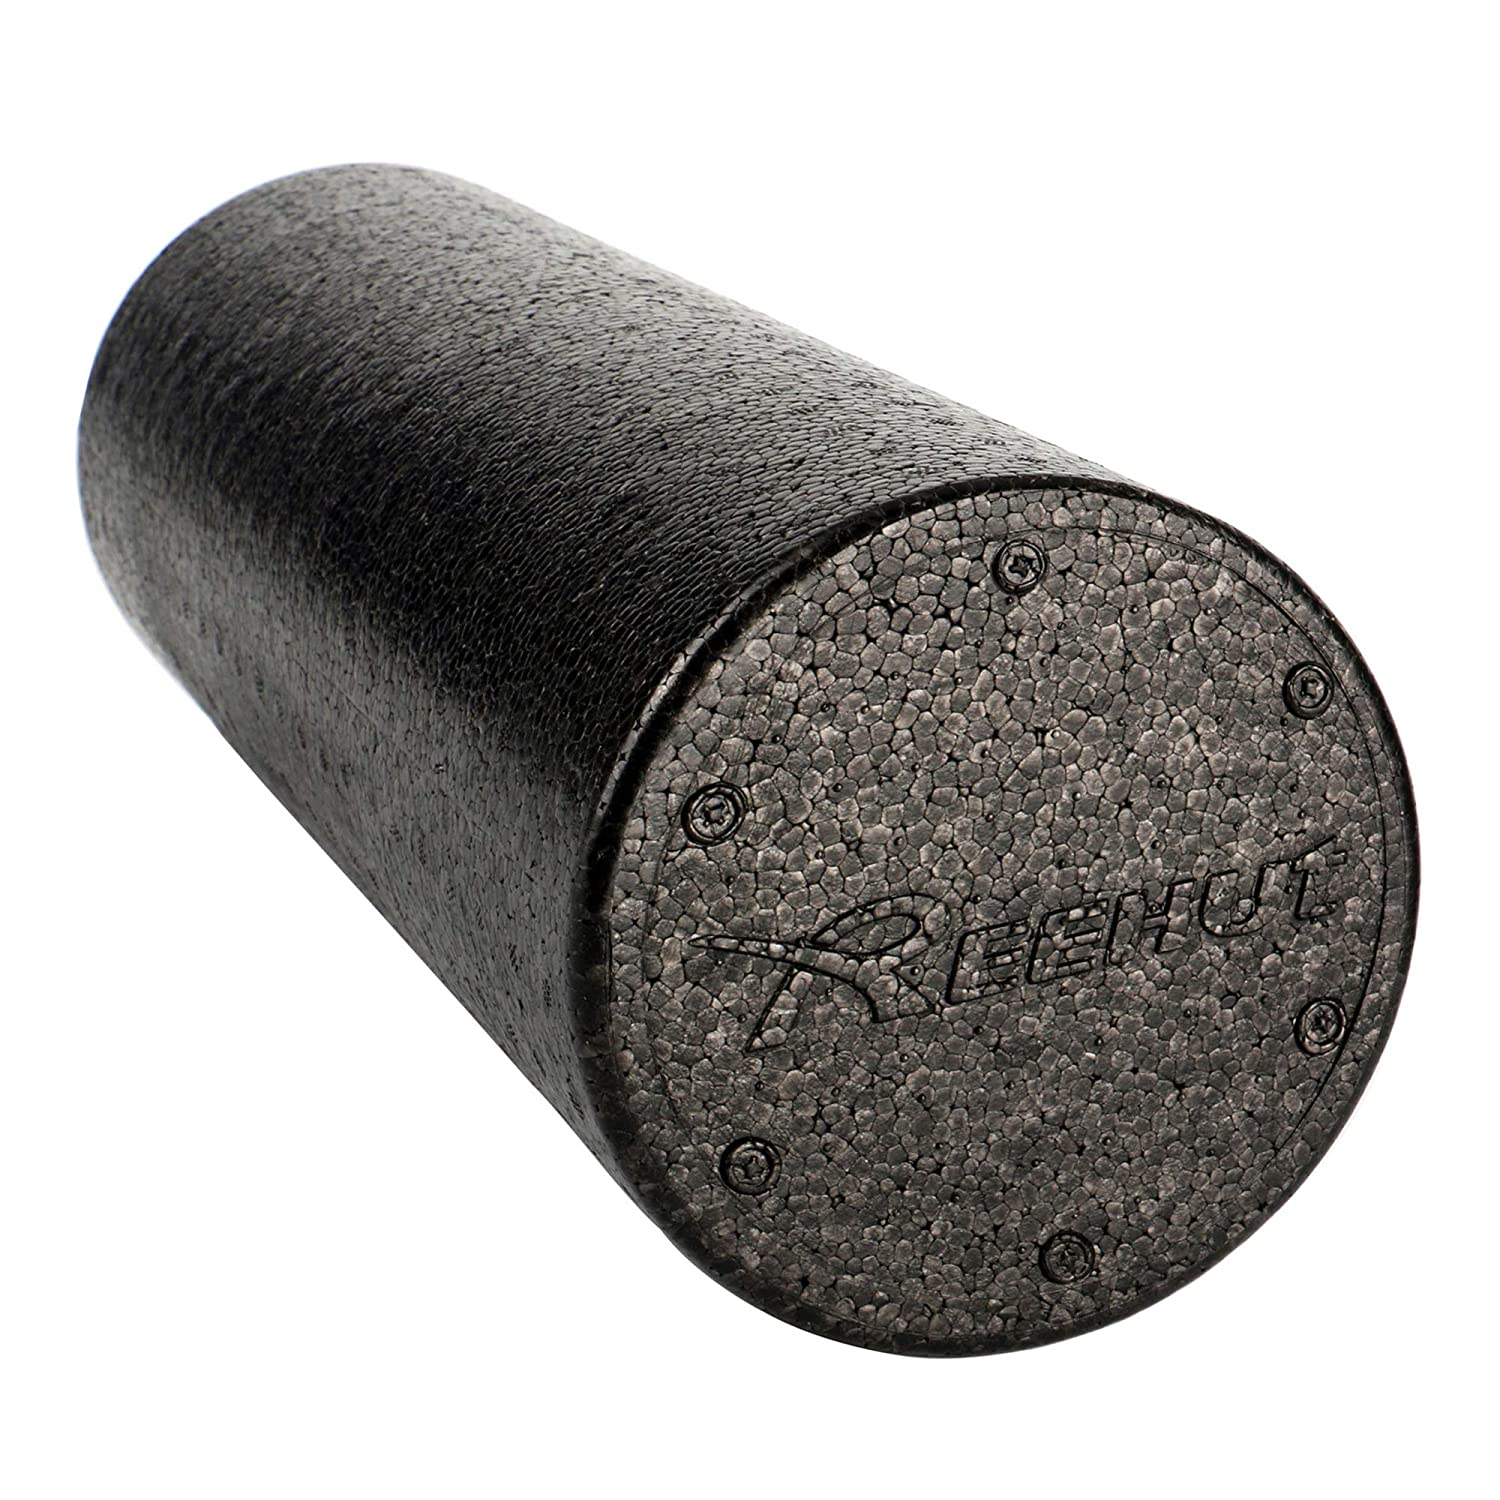 REEHUT Foam Roller – Firm High Density Muscle Rollers with Free User E-Book